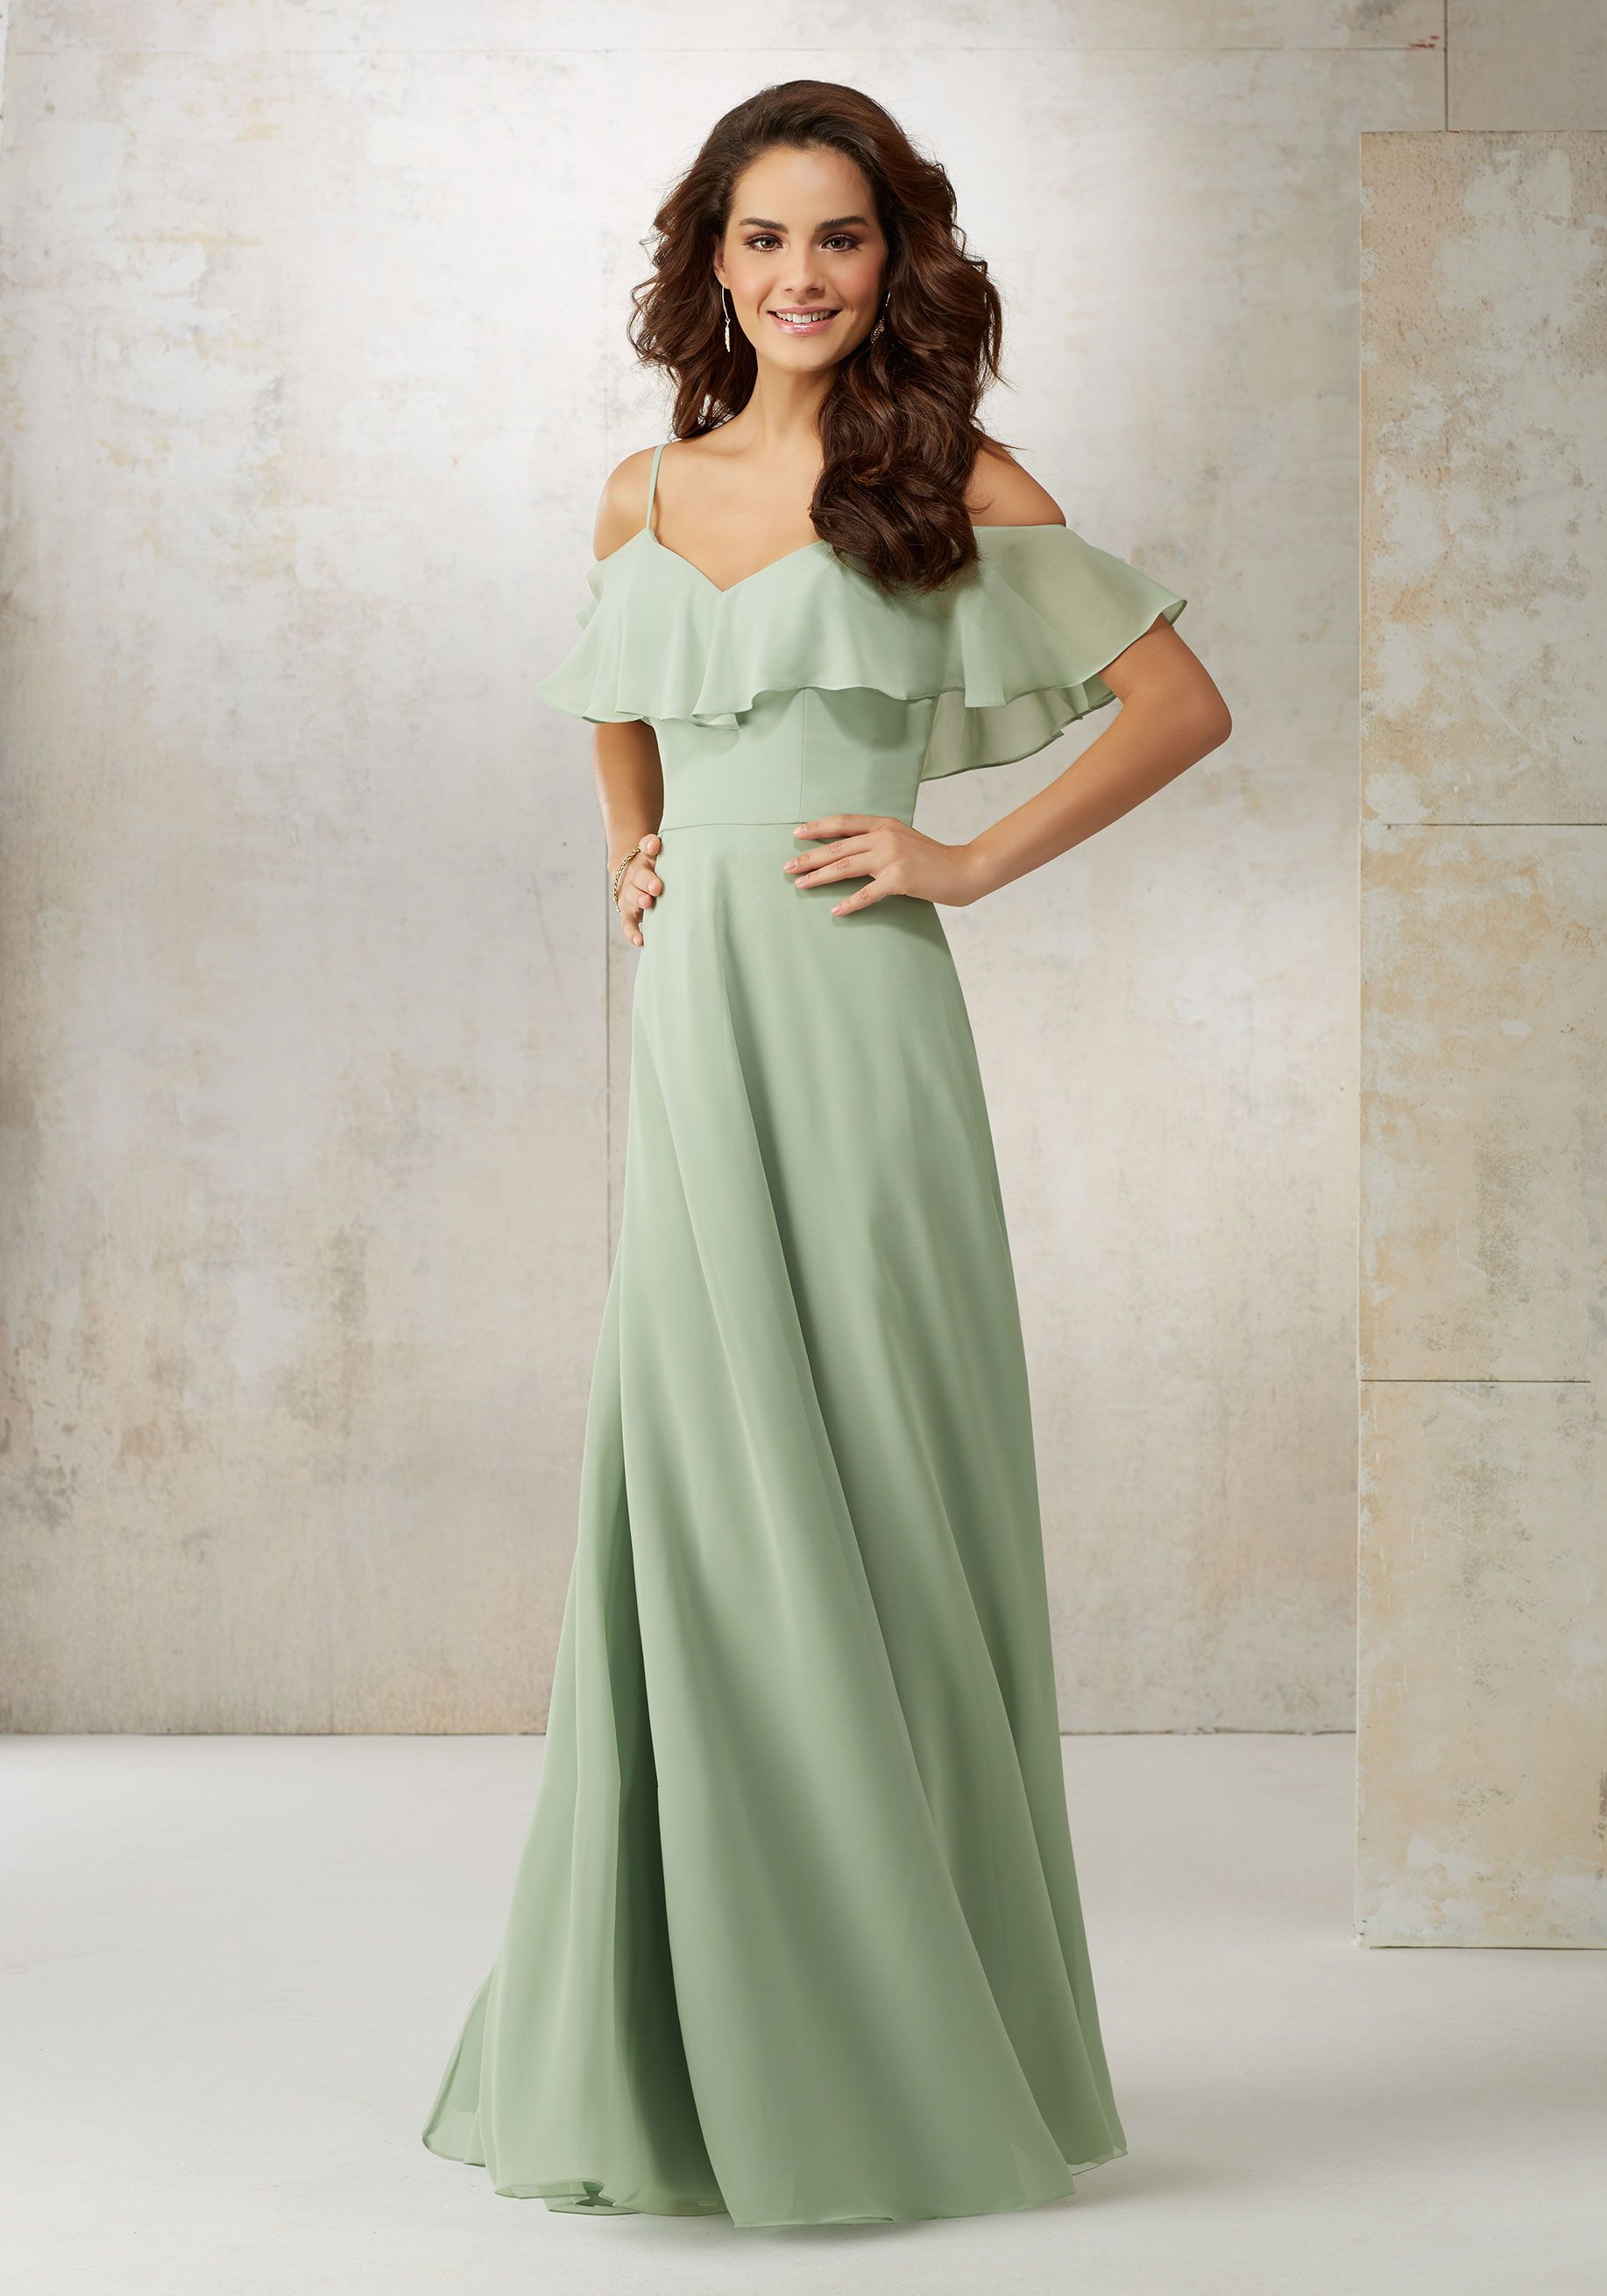 Morilee by madeline gardner bridesmaids style 21509 fluttery mori lee bridesmaids 21509 fluttery ruffles drape the shoulders and neckline of this chiffon bridemaids dress creating a soft romantic feel zipper back ombrellifo Gallery